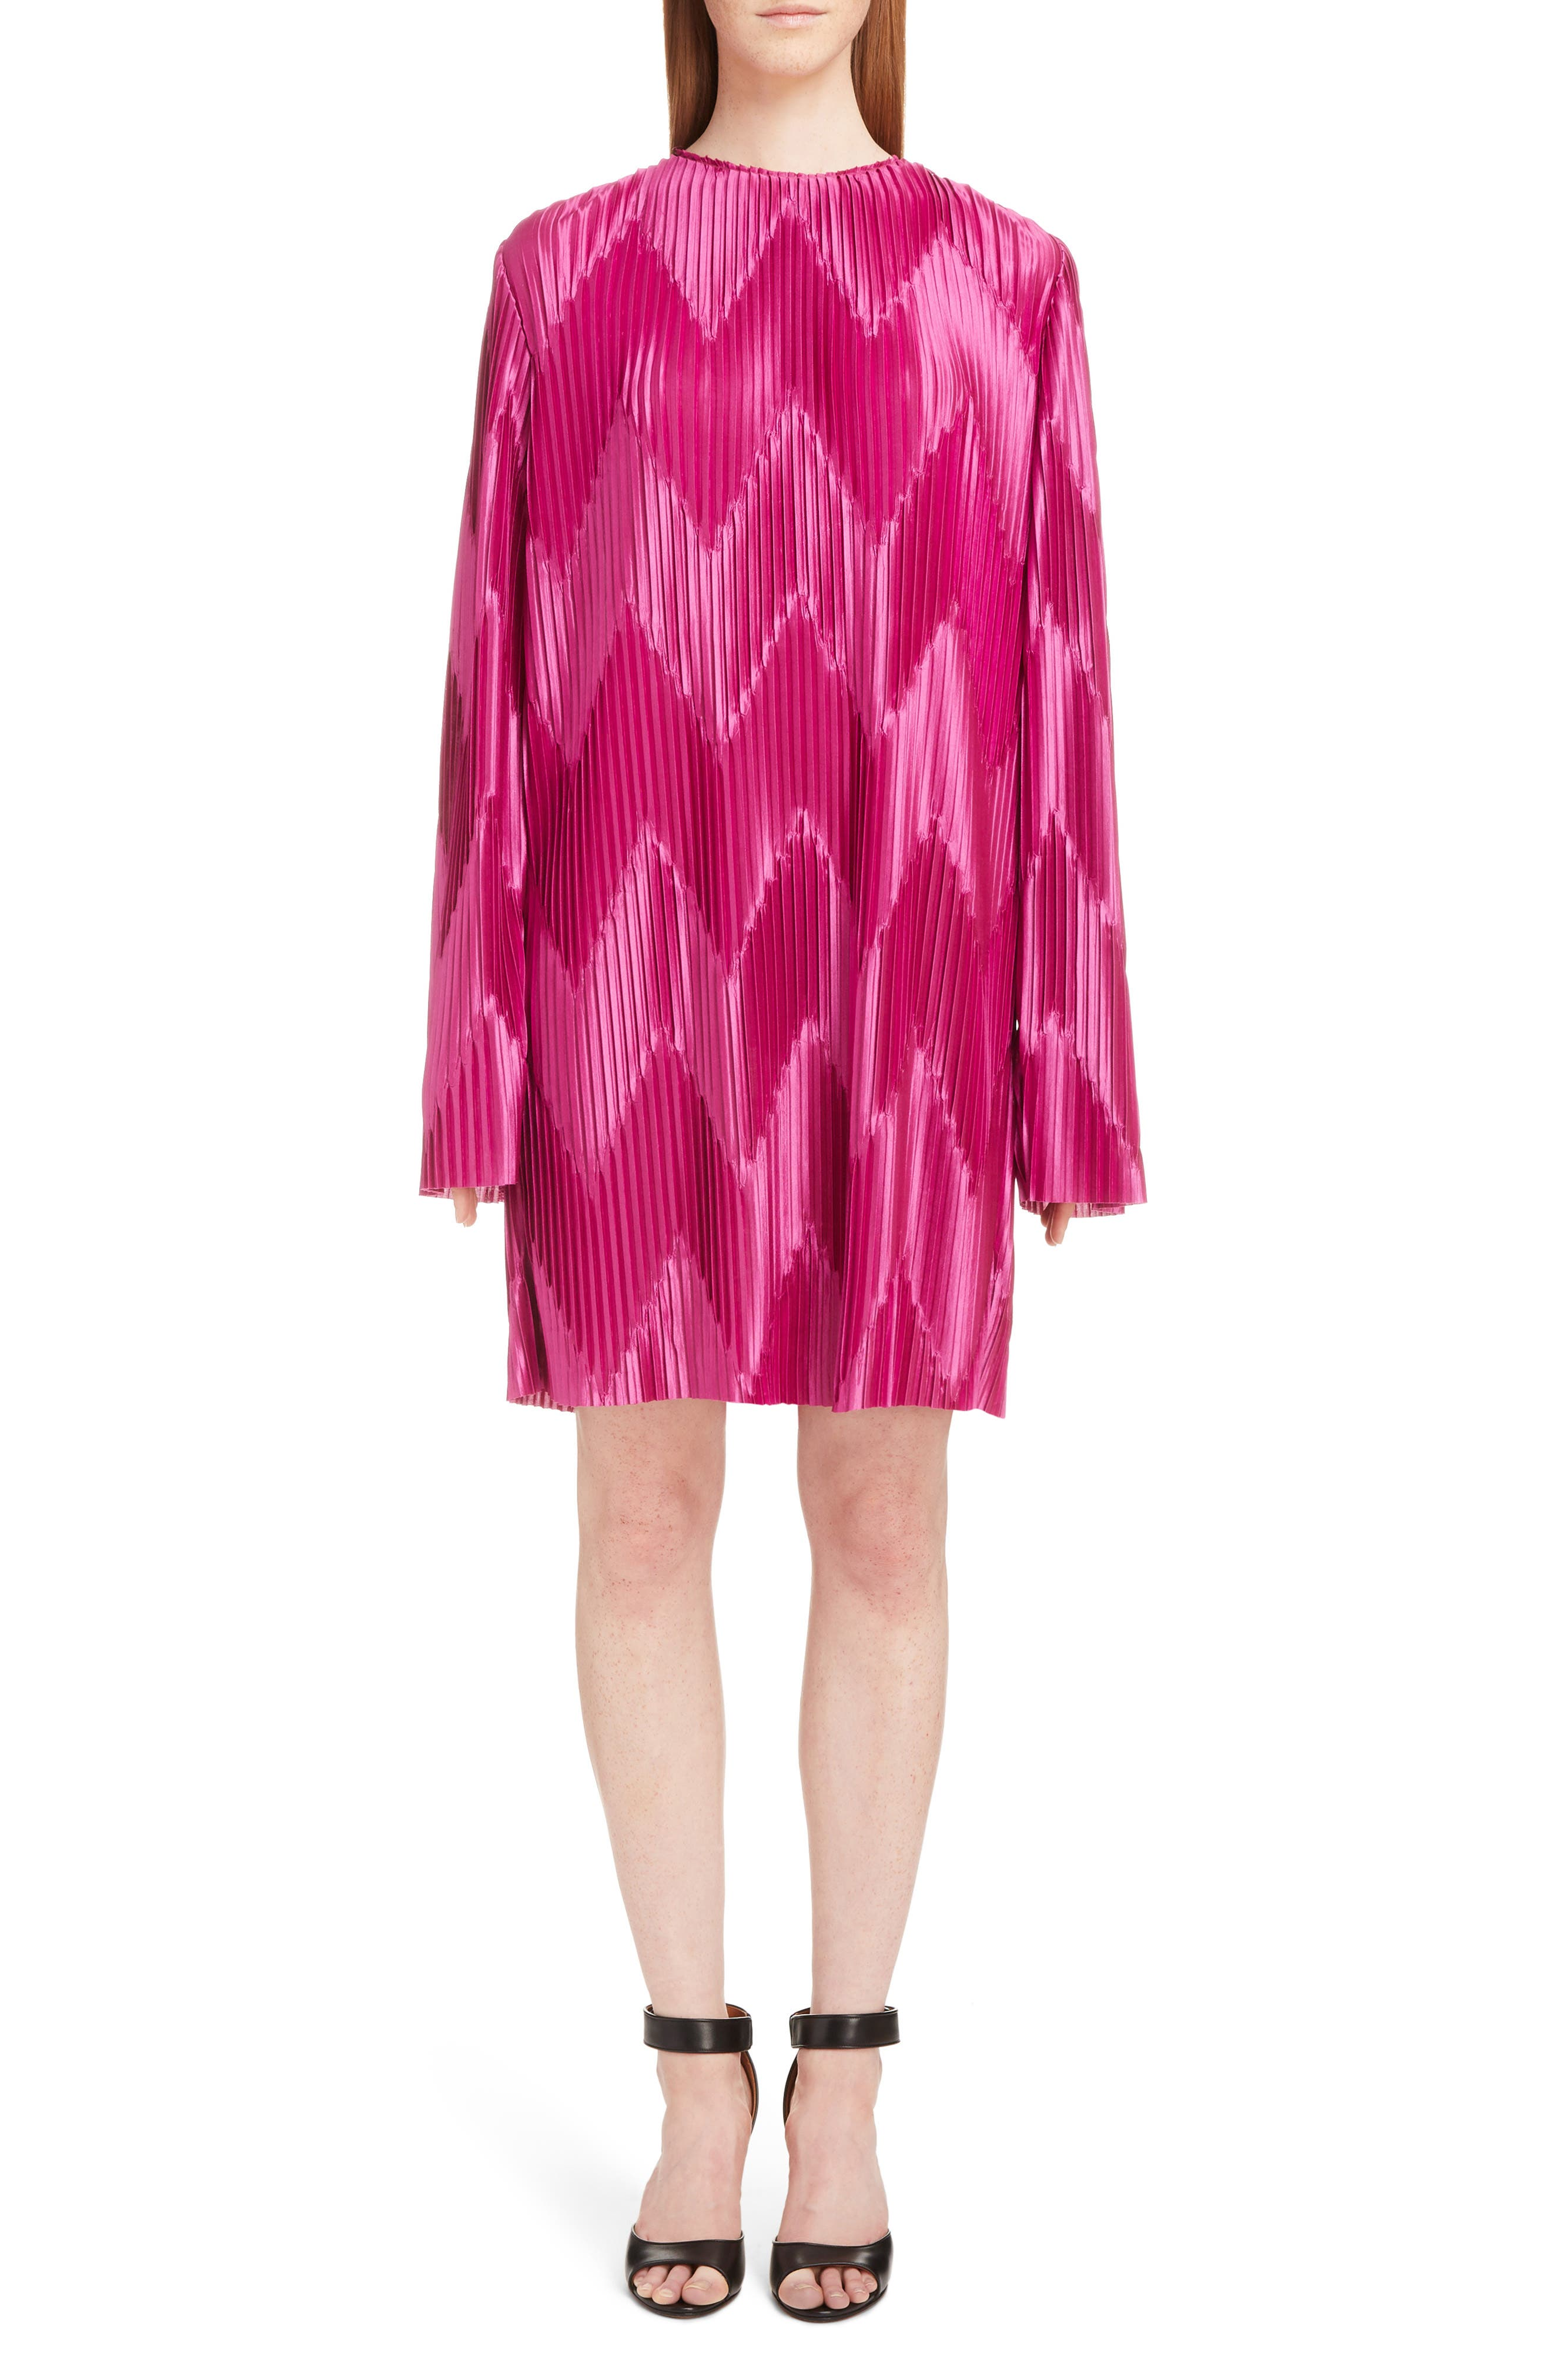 Givenchy Zigzag Pleated Jersey Dress, 6 FR - Pink